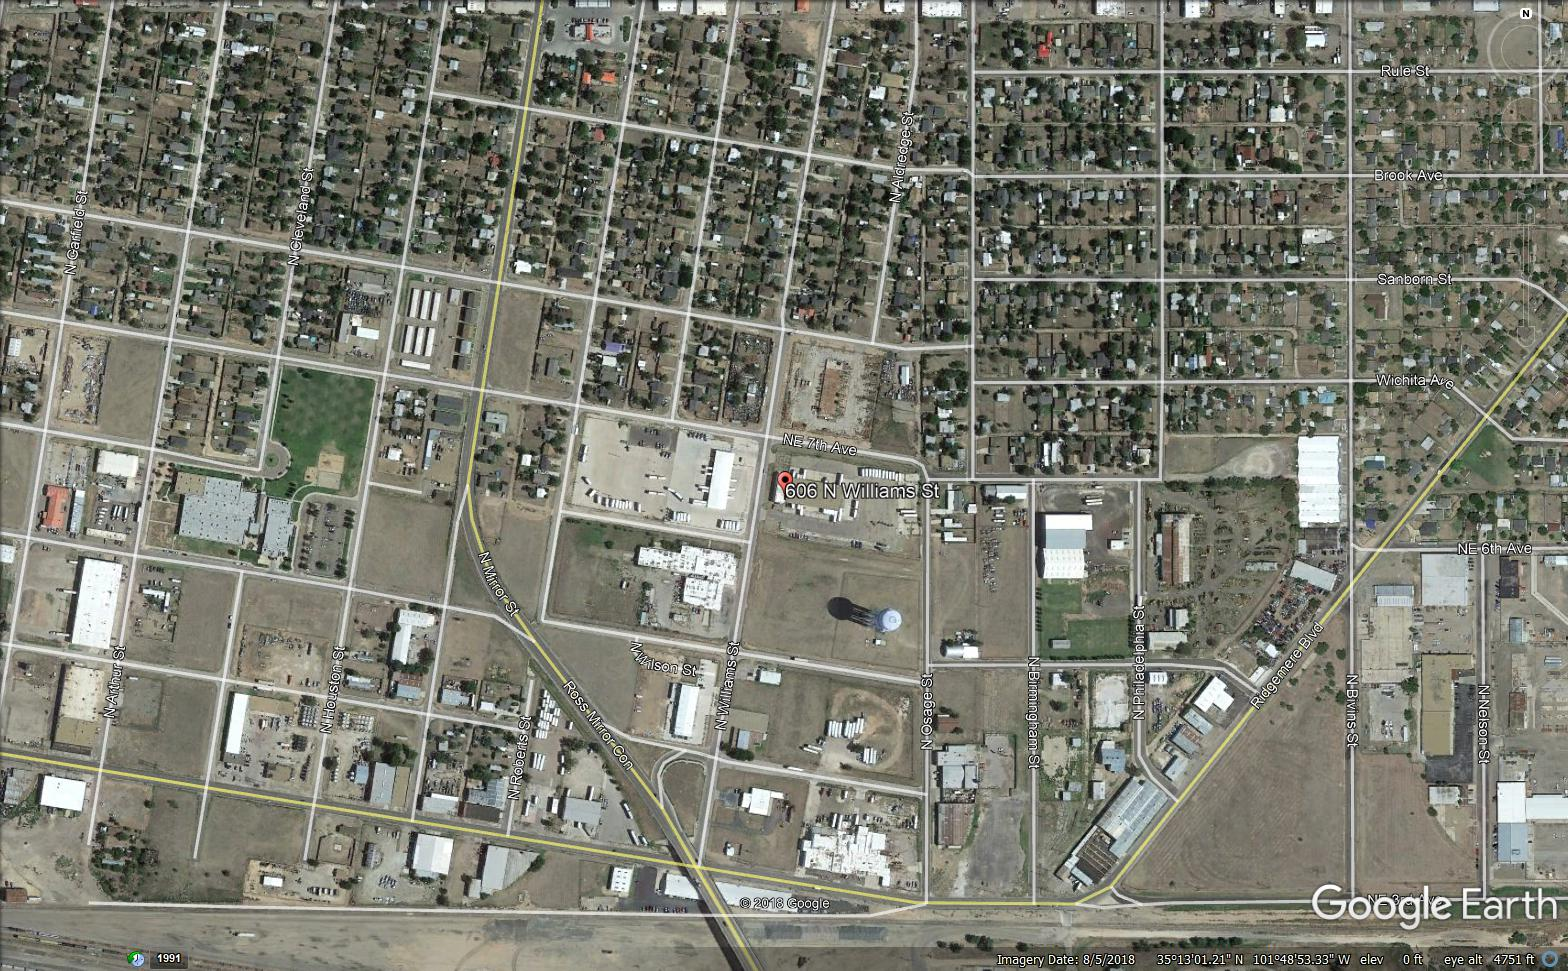 606 N. Williams St. Amarillo, TX  79107 Image 1